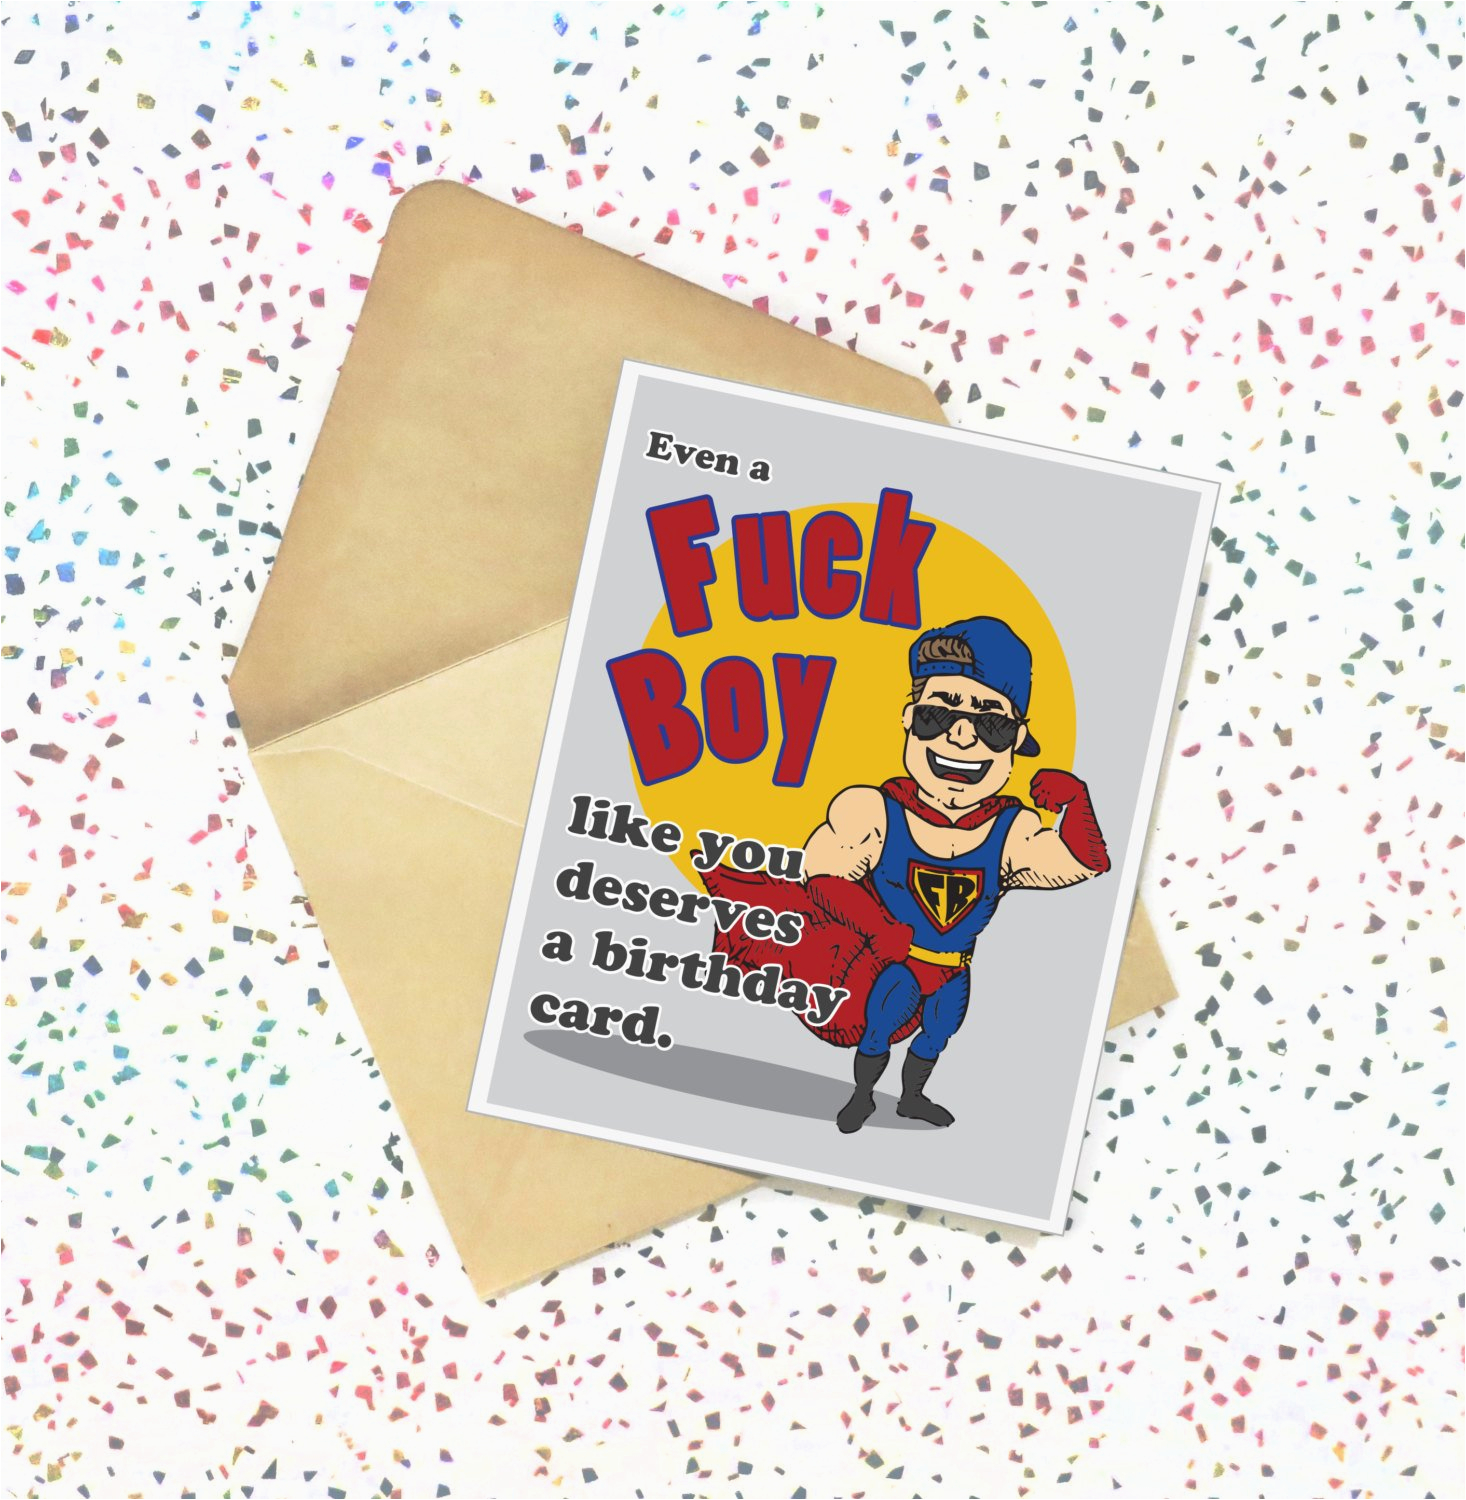 Sexy Birthday E Card Fk Boy Like You Funny Birthday Card Adult Greeting Card